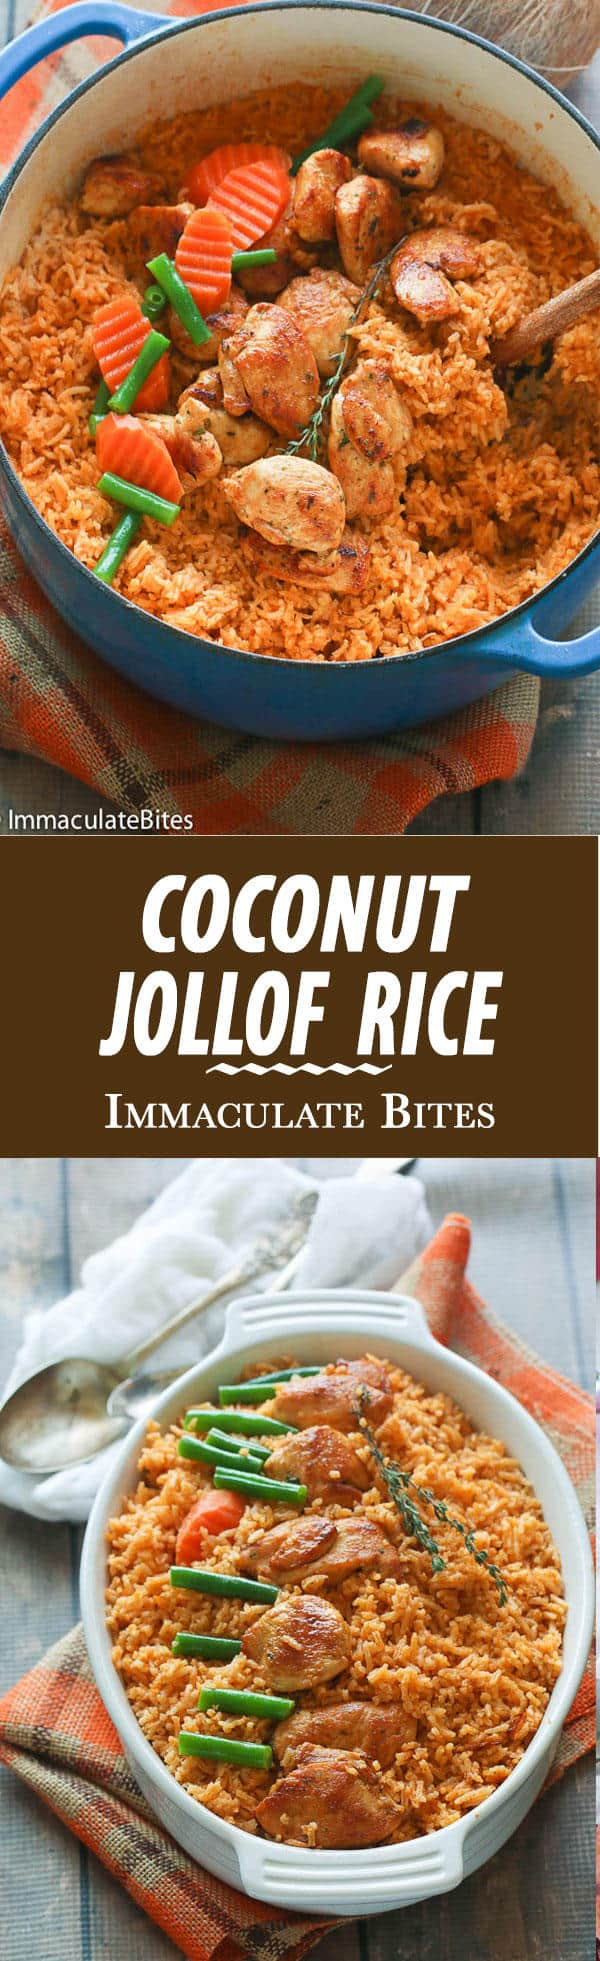 COCONUT-JOLLOF-RICE